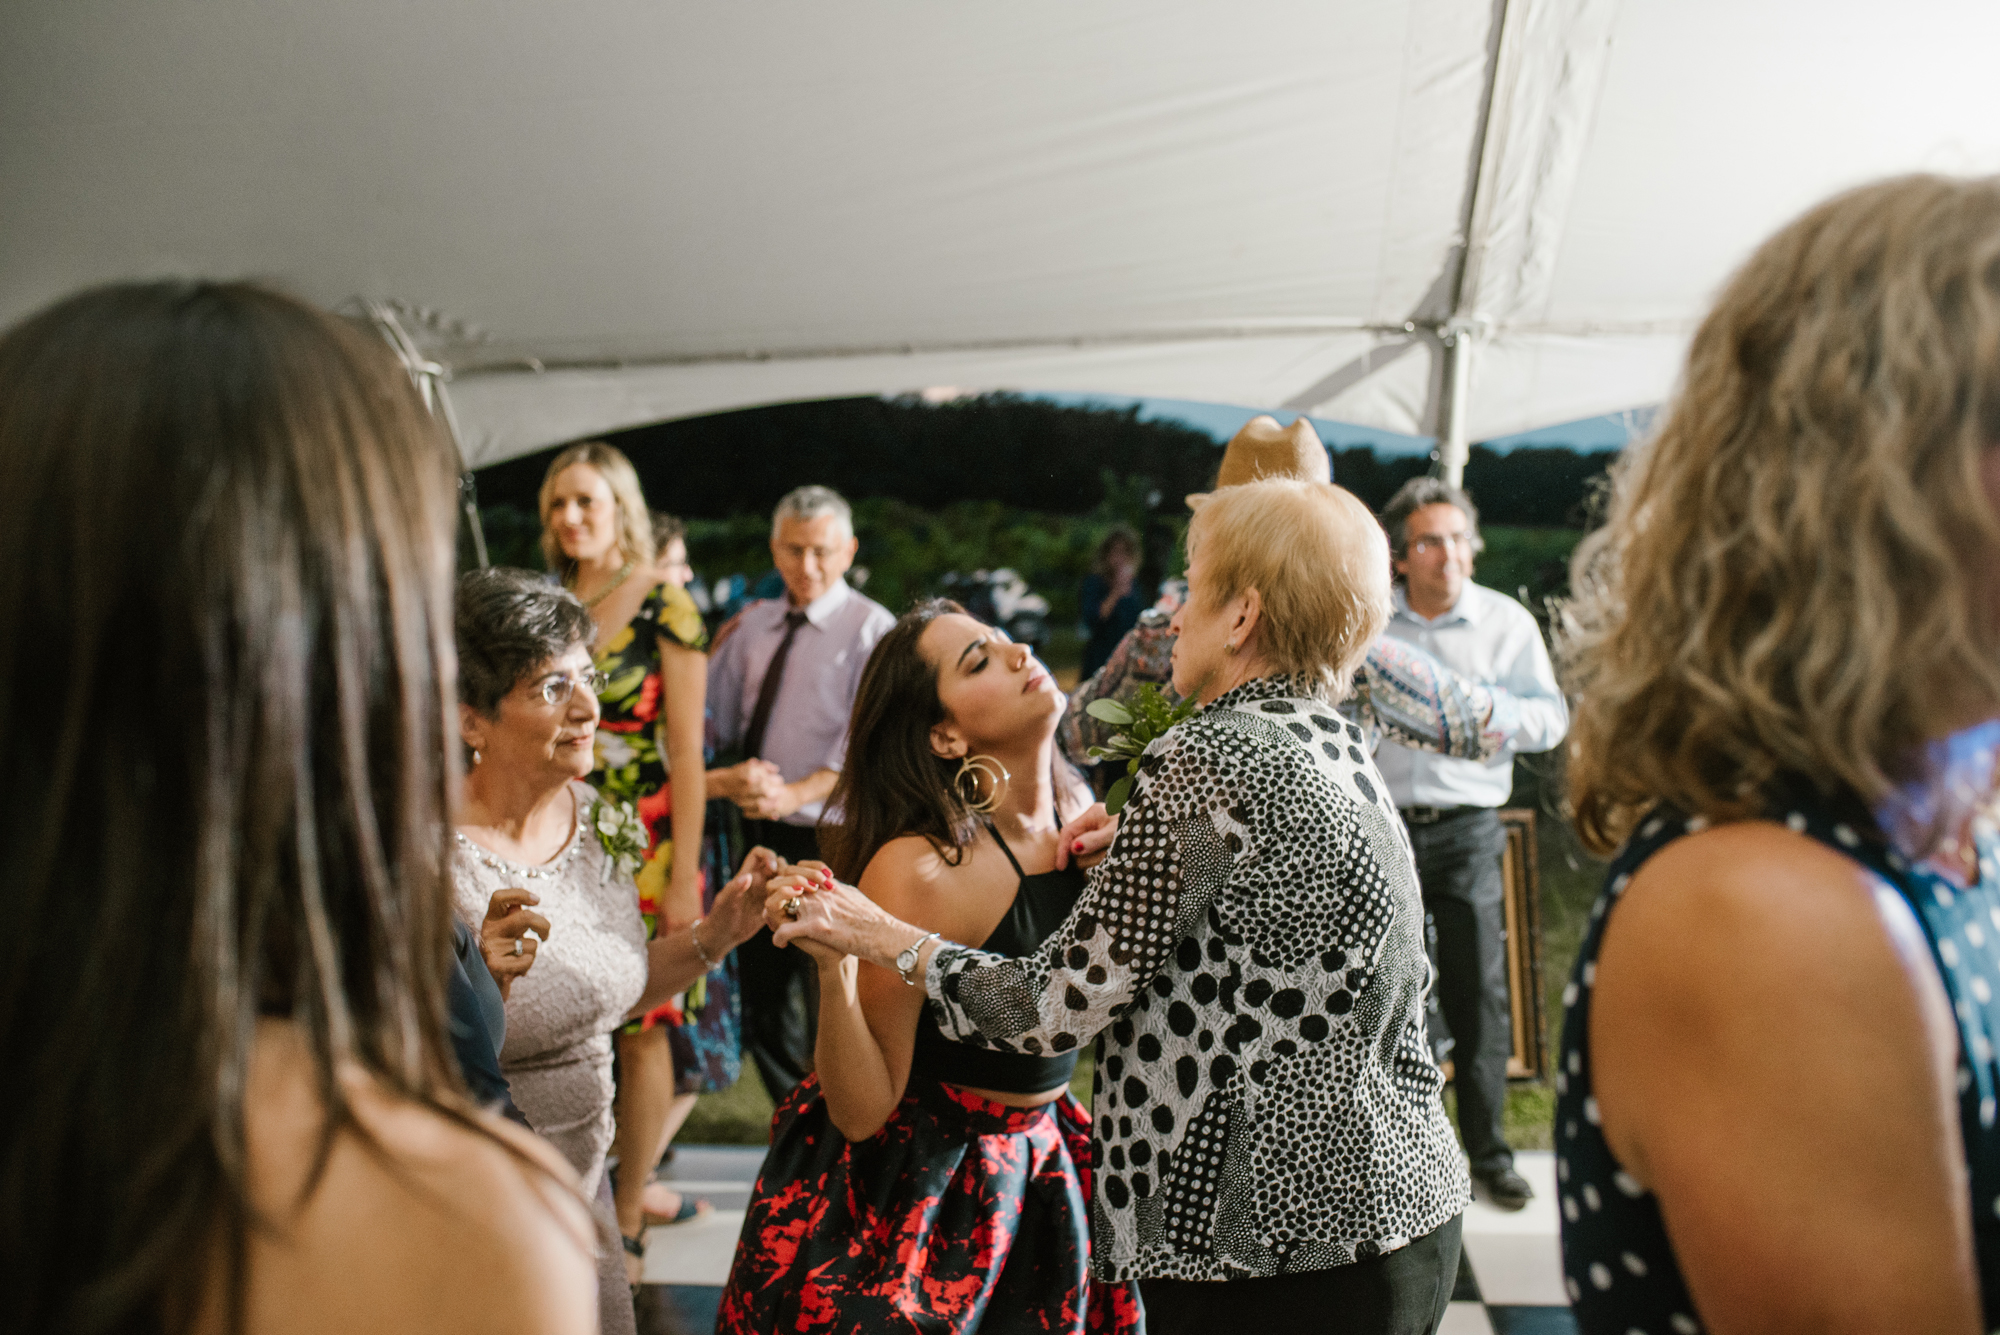 quincy-michigan-wedding-dancing-pictures-sydney-marie (17).jpg